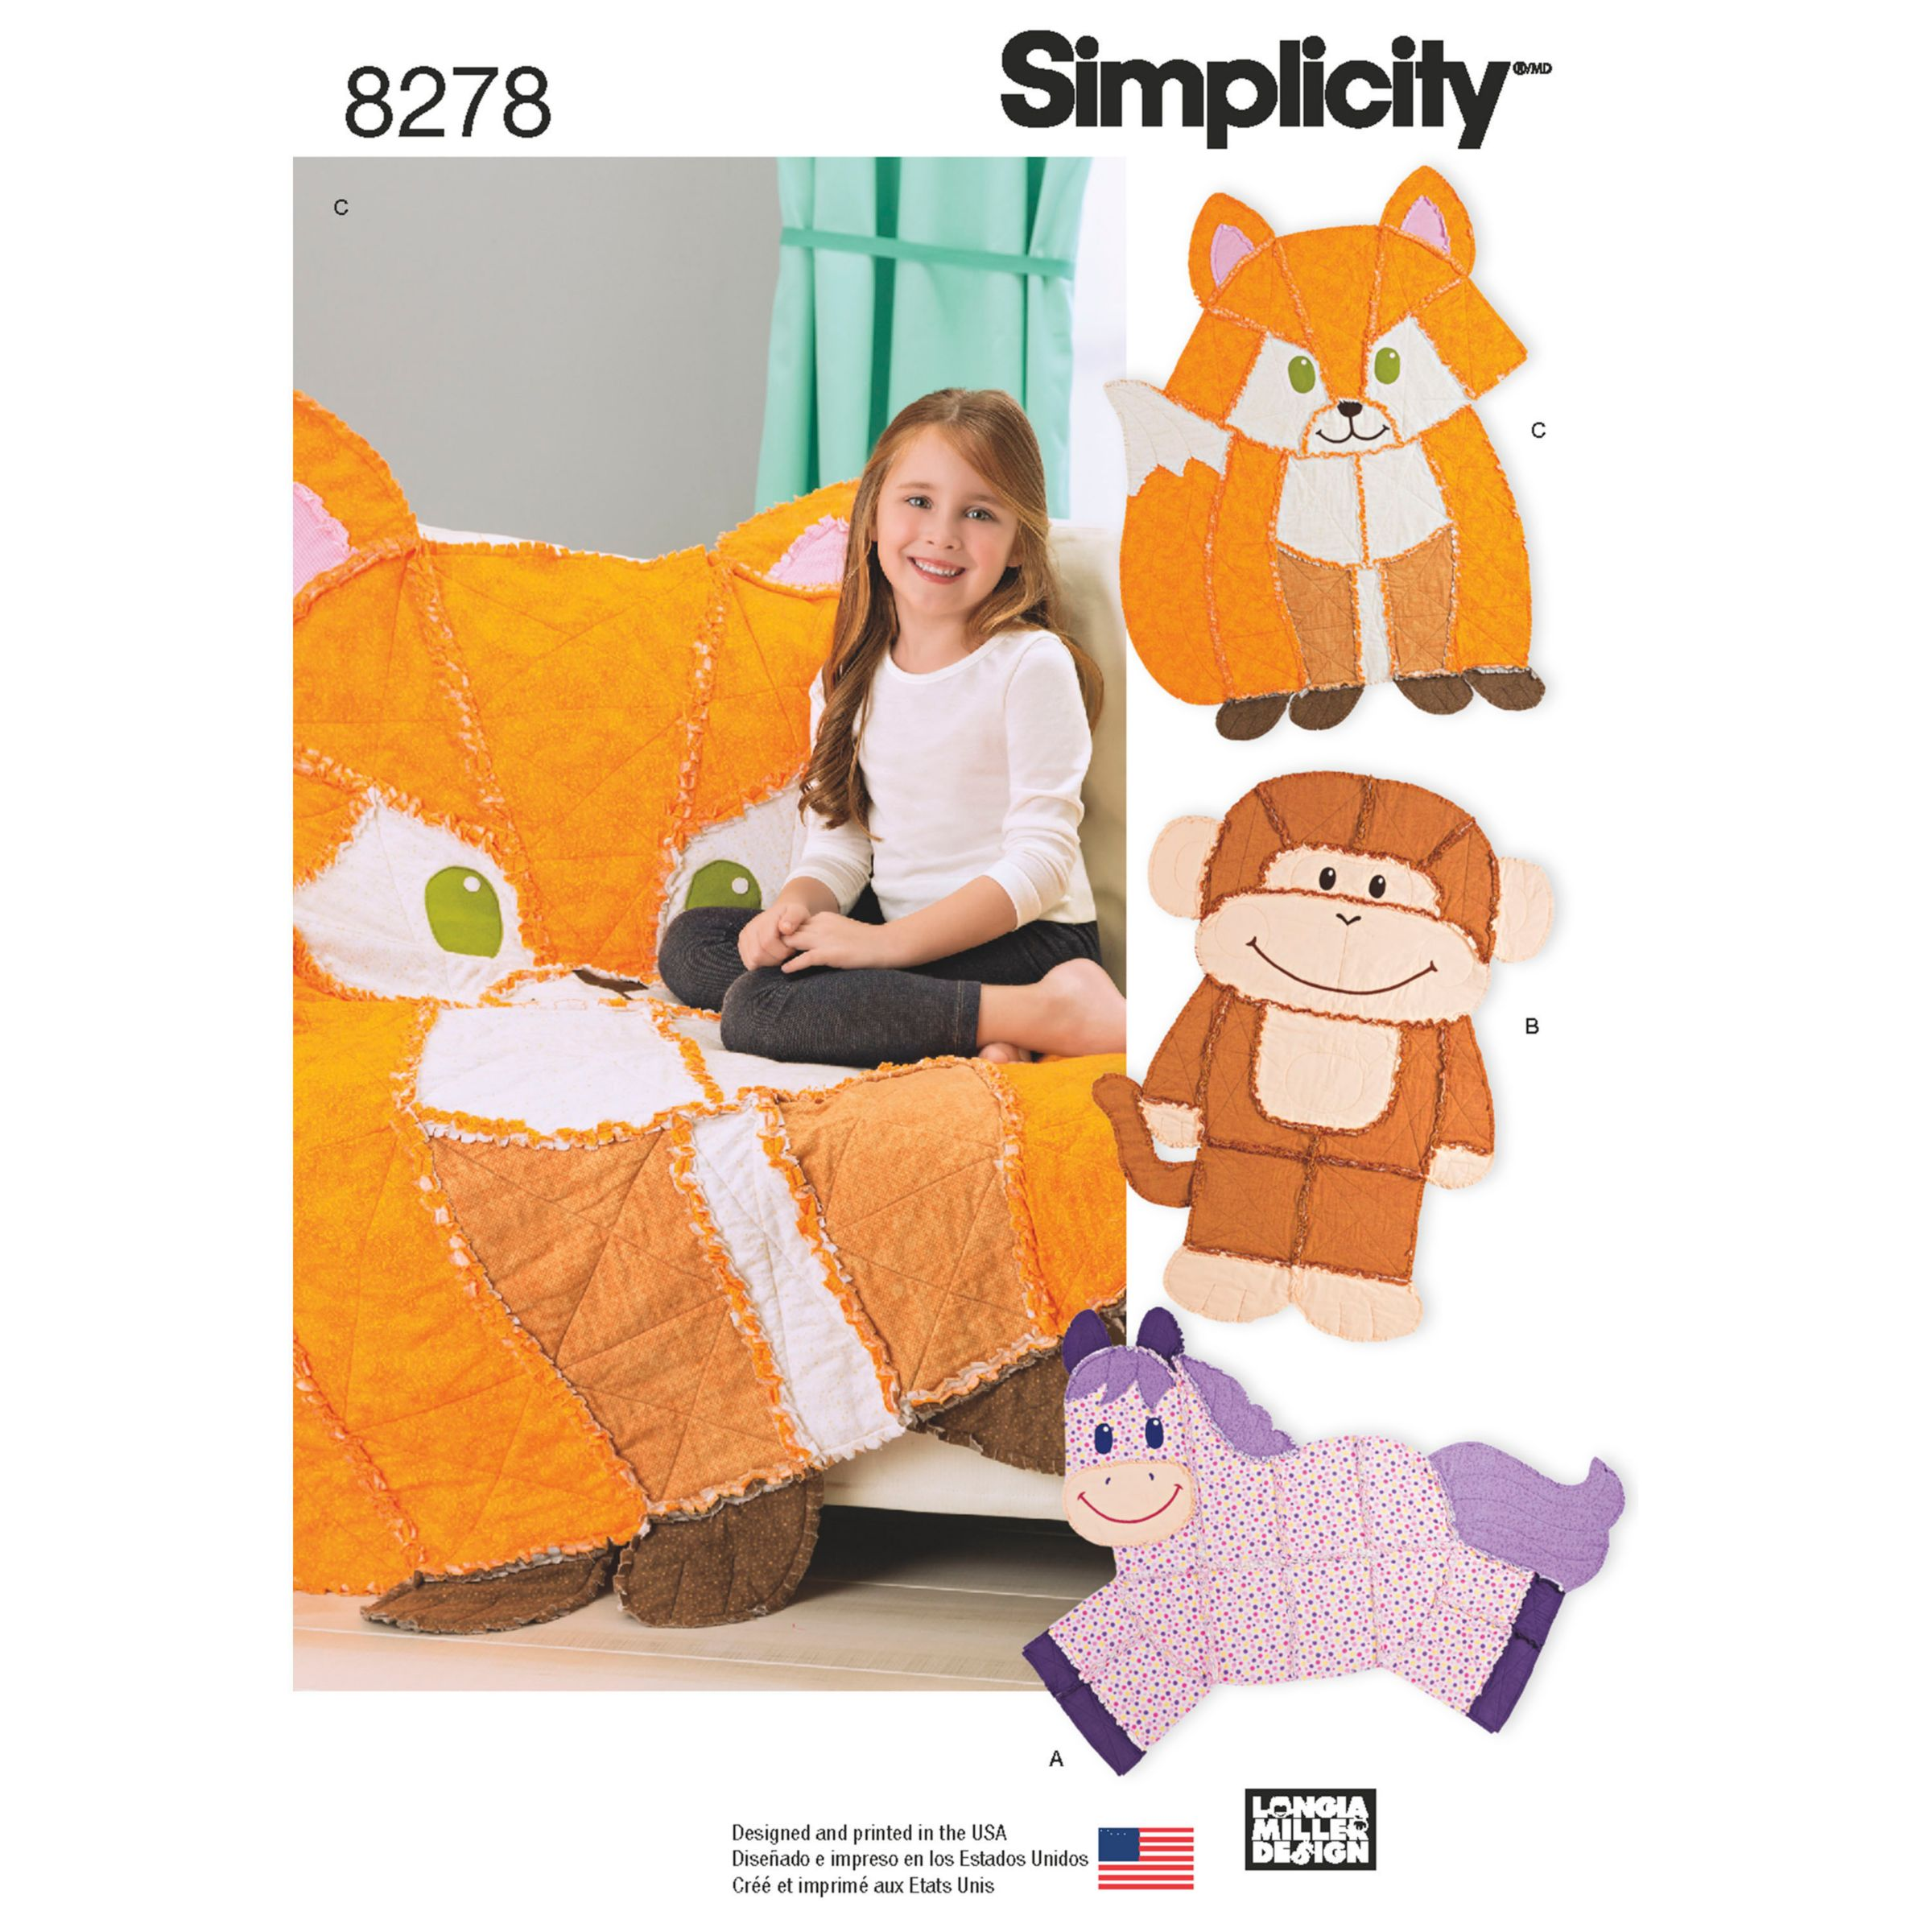 Simplicity Simplicity Animal Rag Quilts Sewing Pattern, 8278, OS